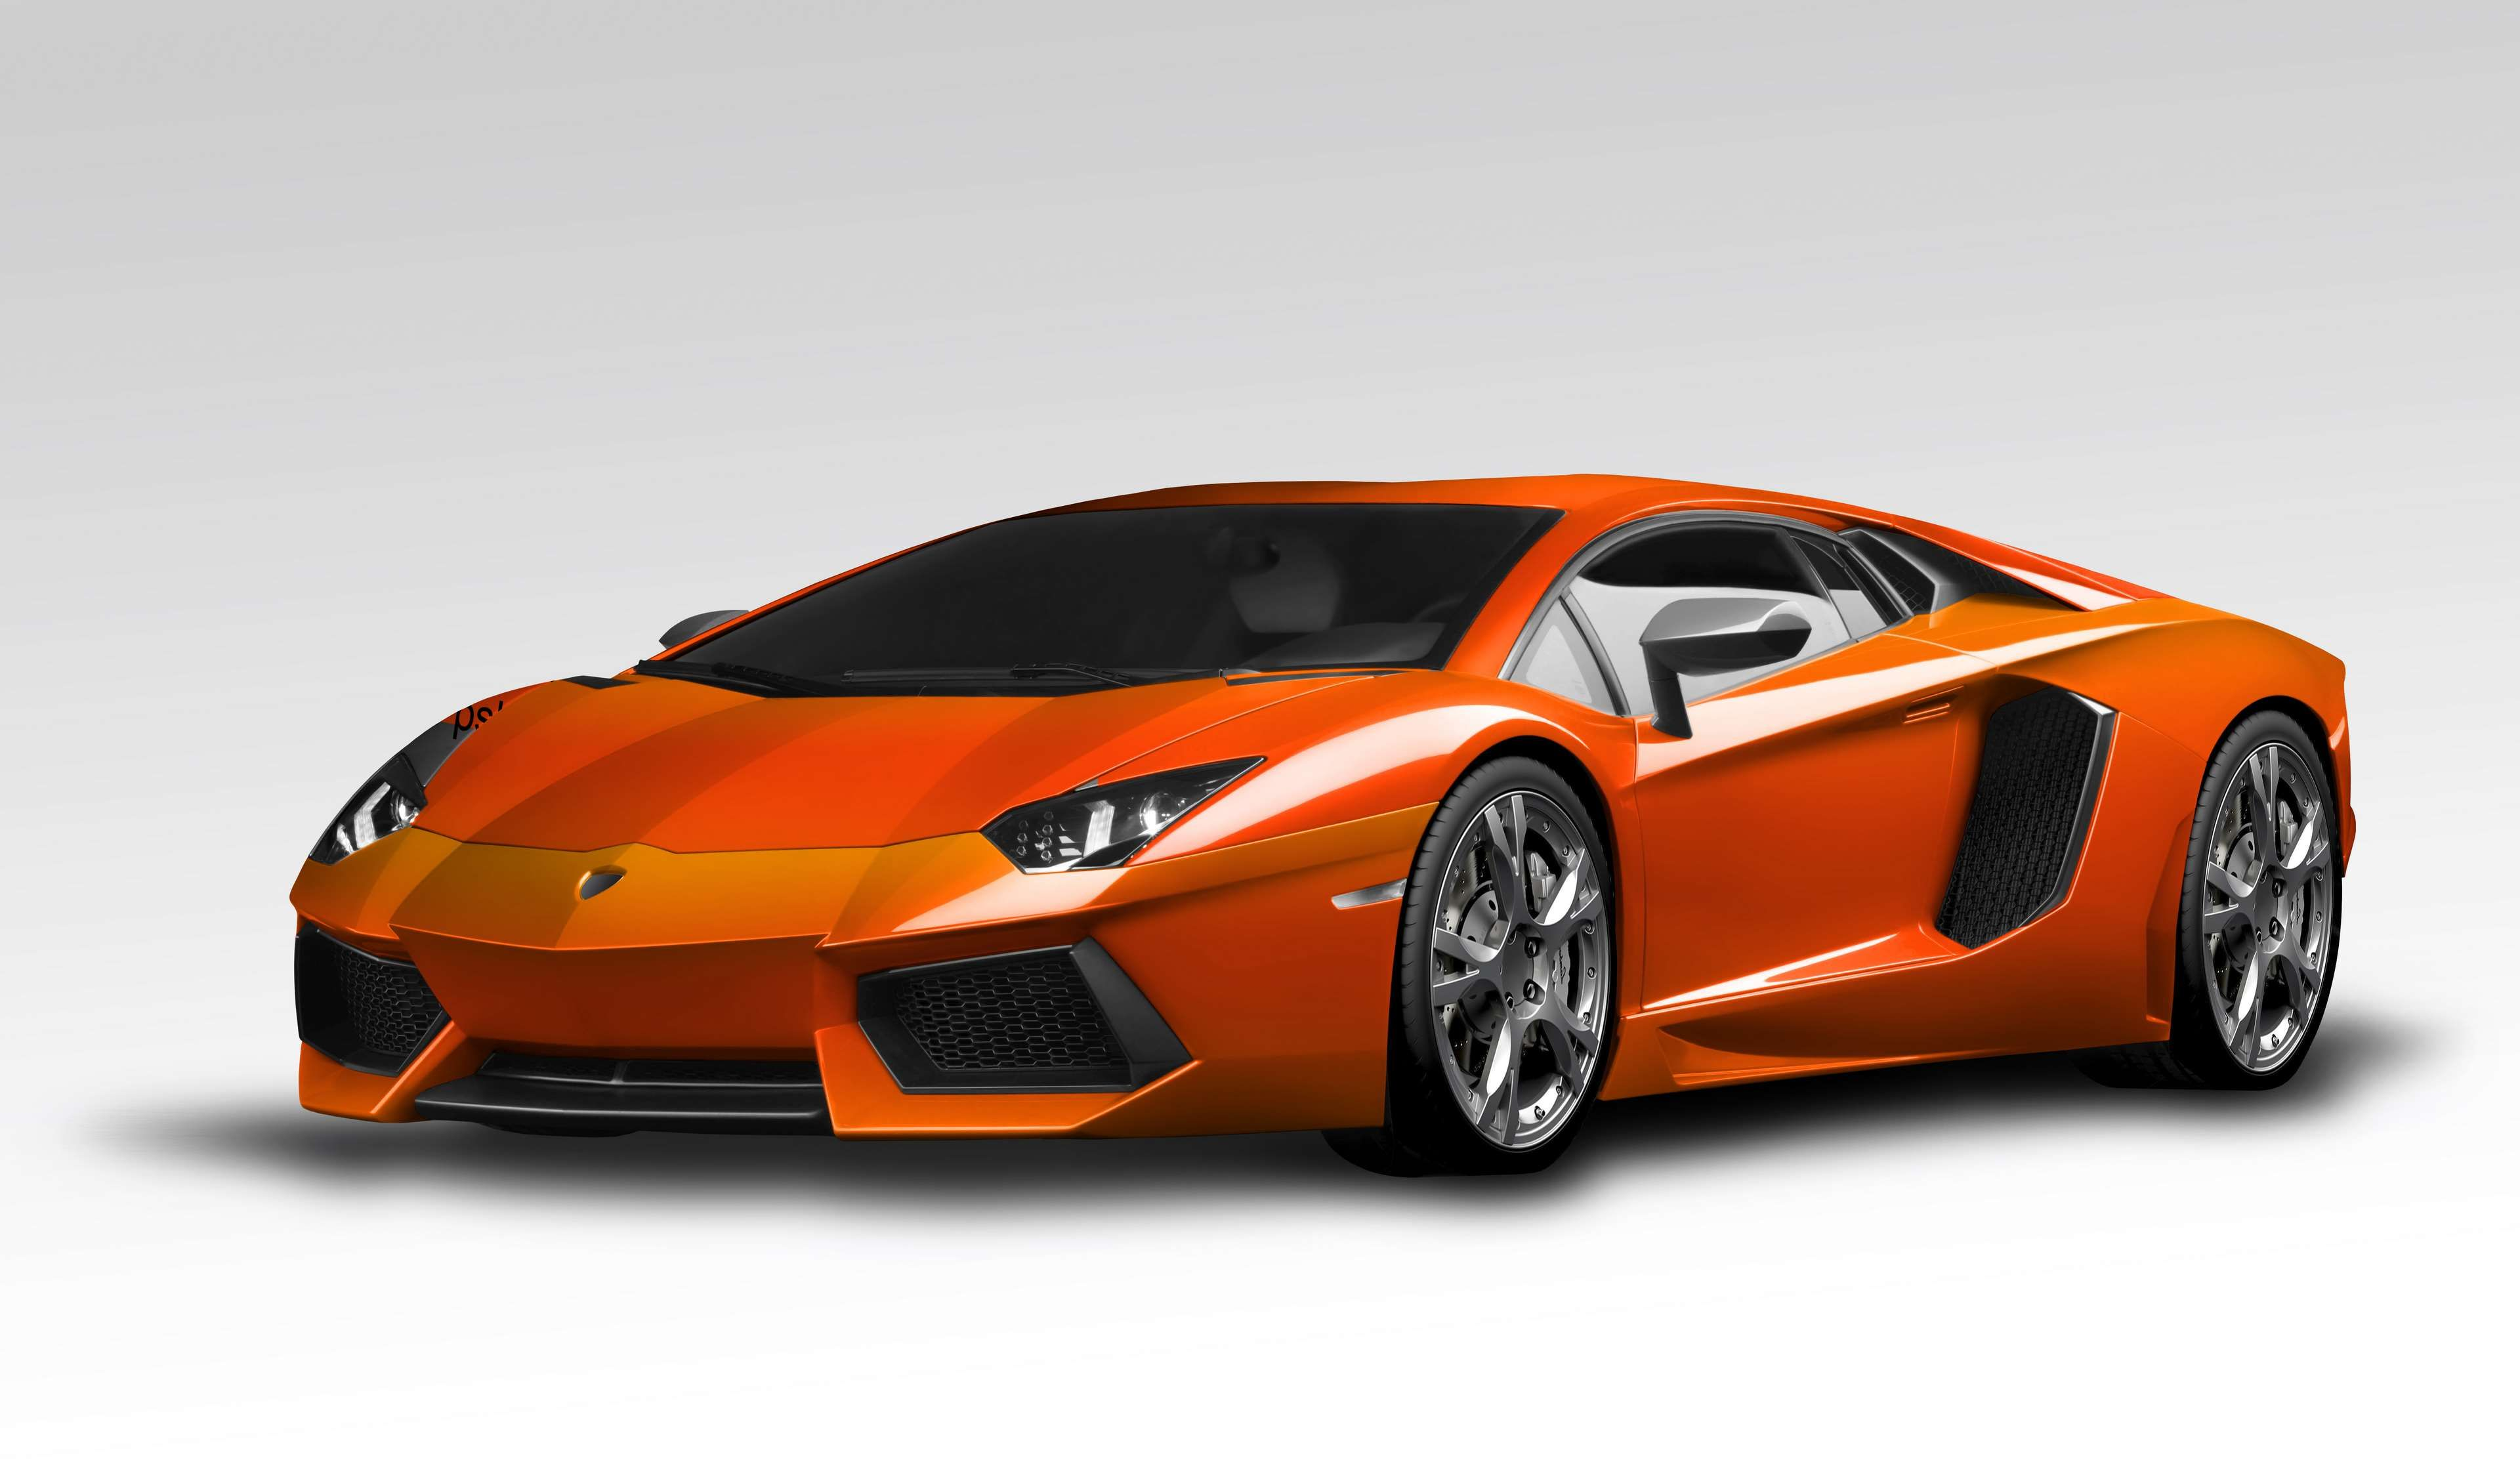 Car Cars Lamborghini Aventador Luxury Car Orange Sport Car 4k